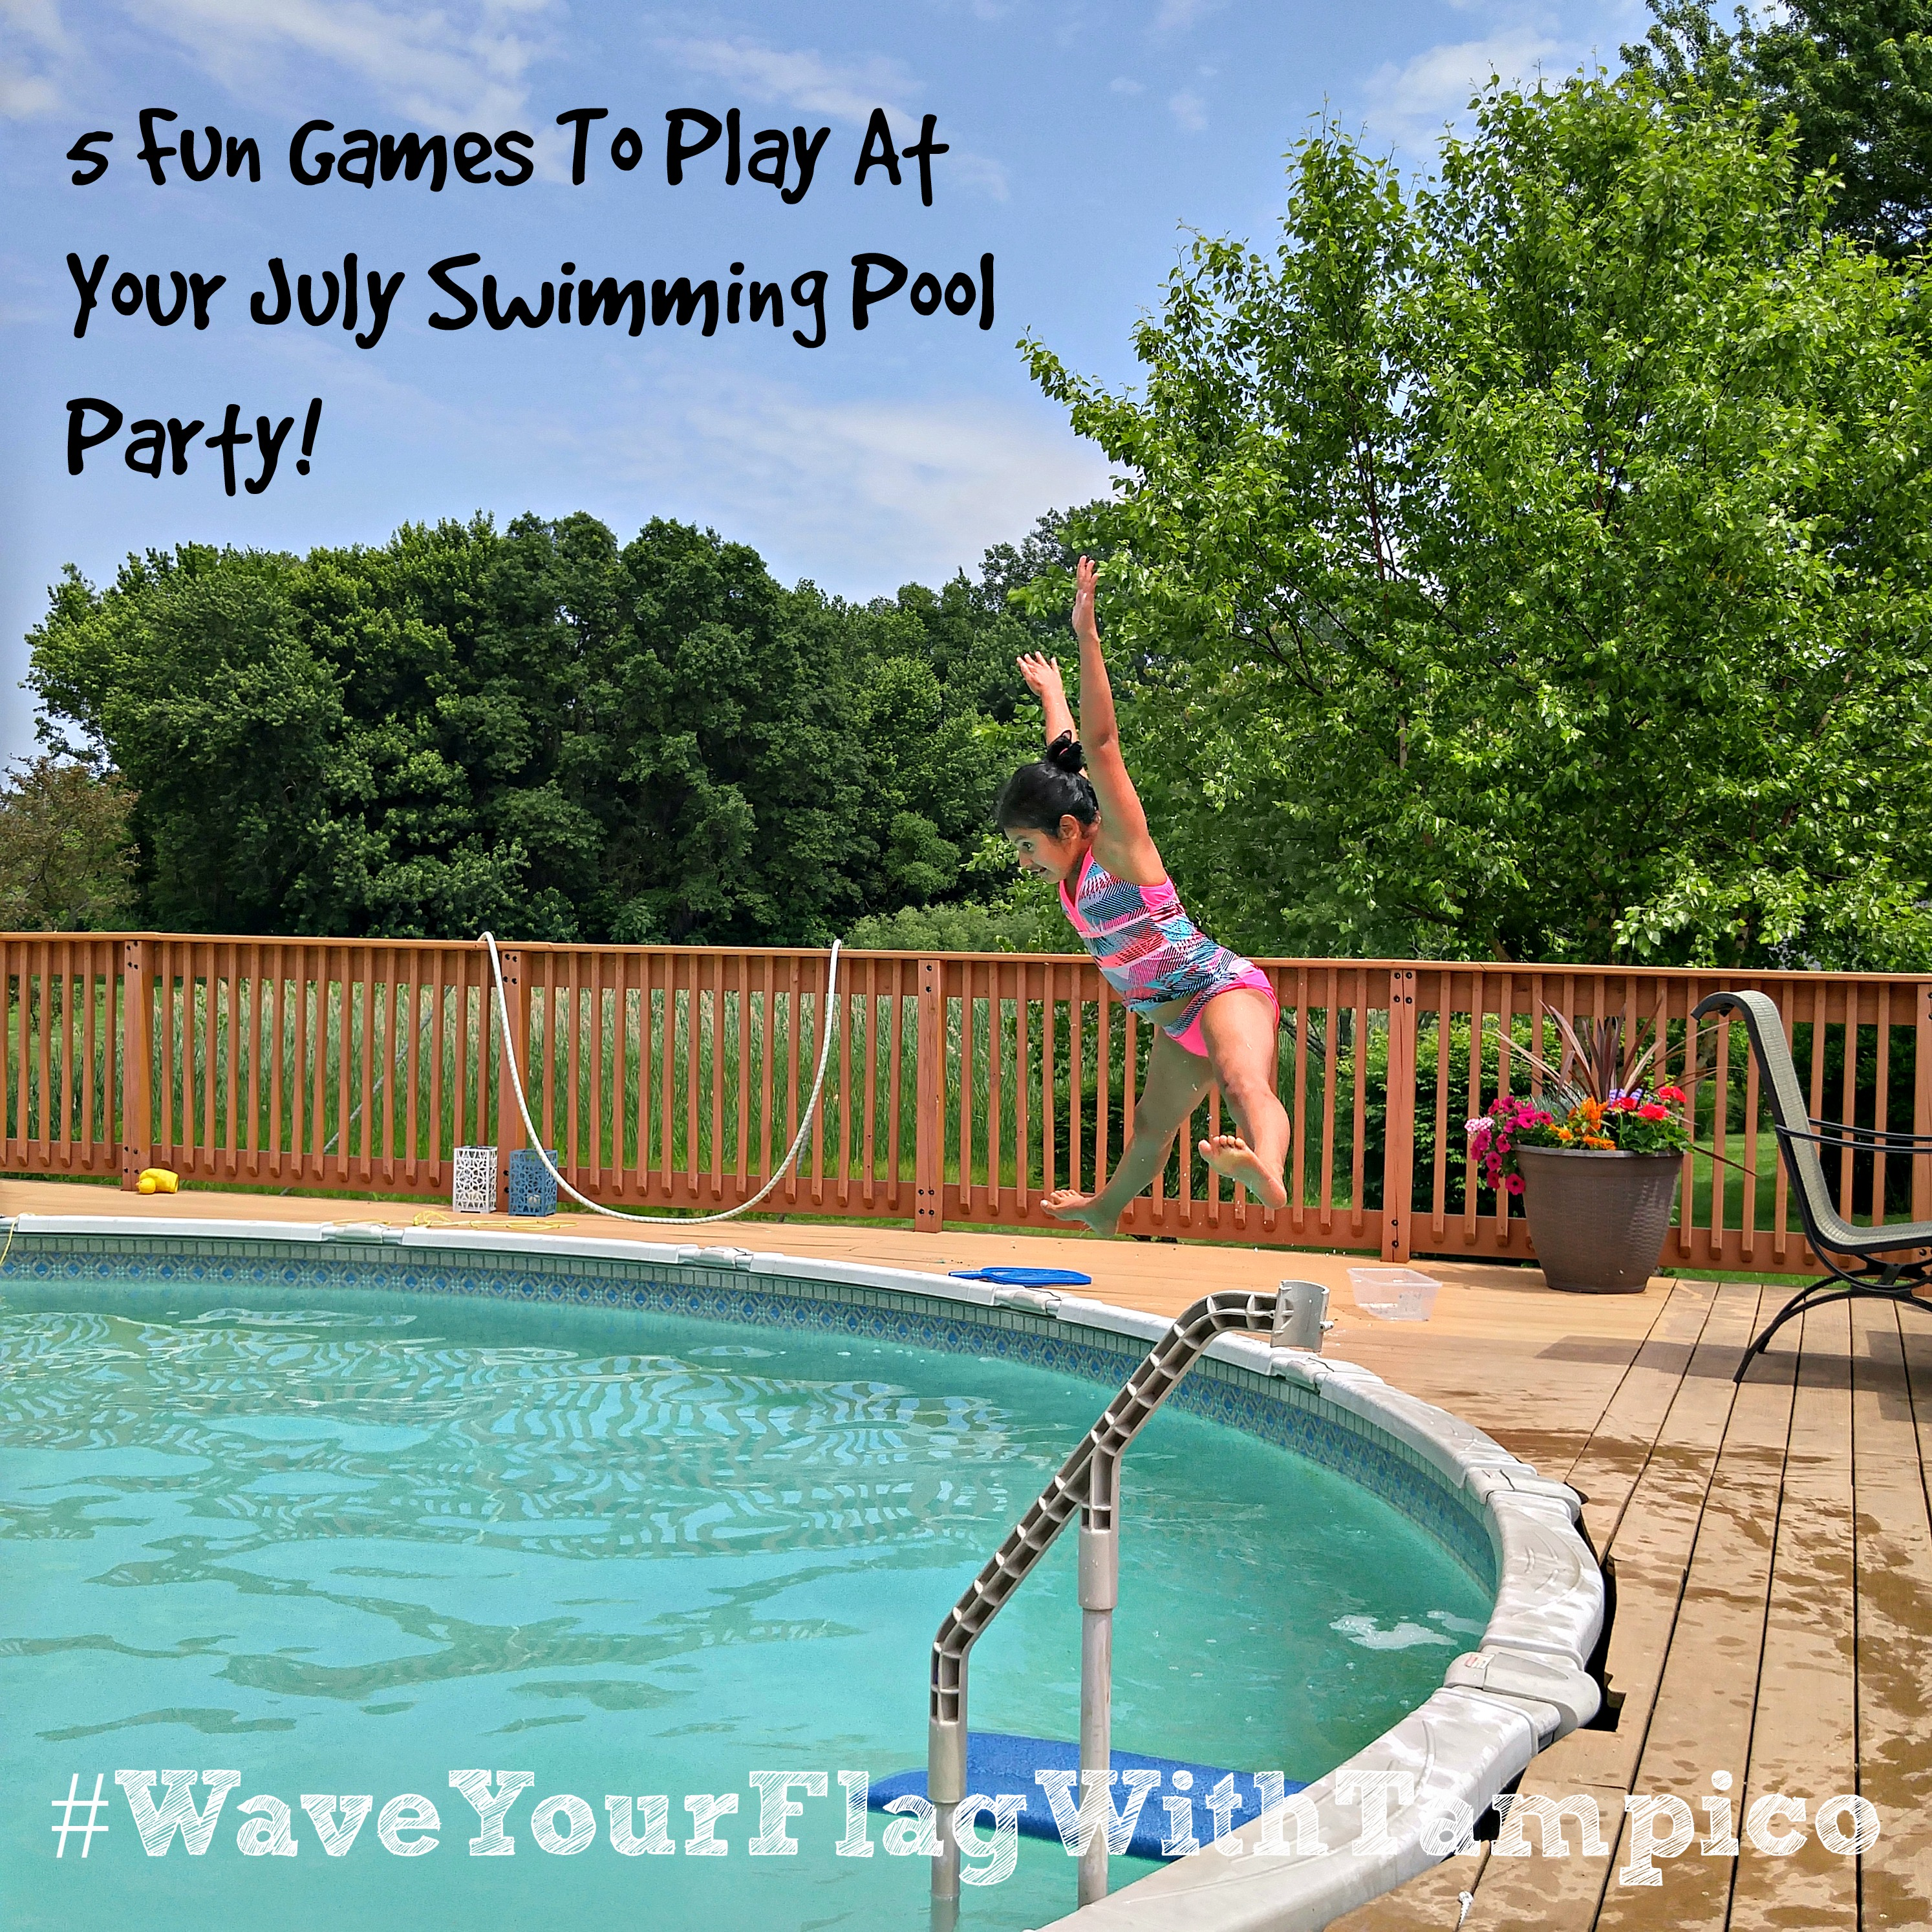 10 Swimming Pool Games Anyone Can Play | LifeDaily